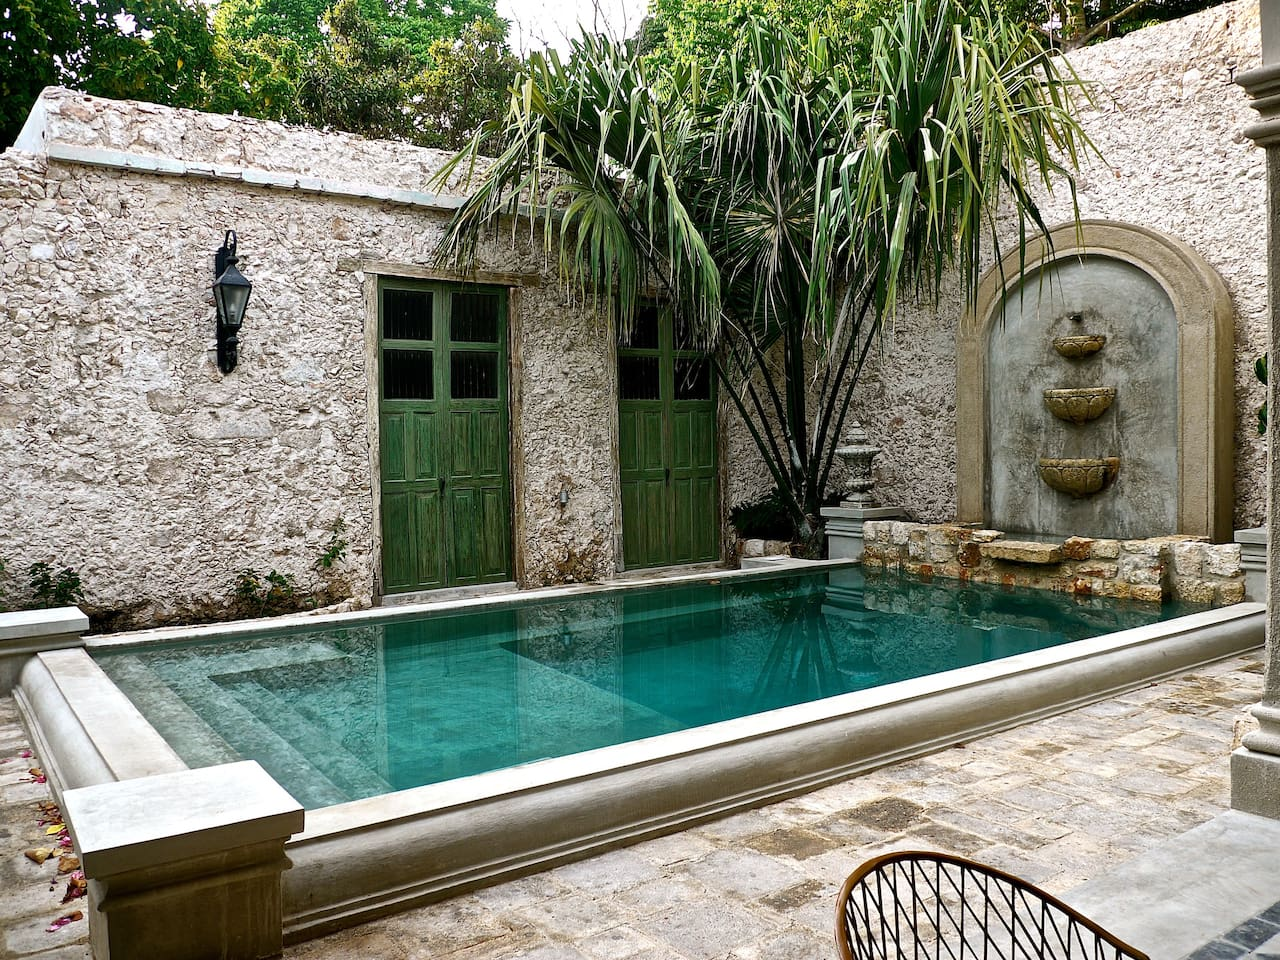 Opens to pool area in front and garden in back!